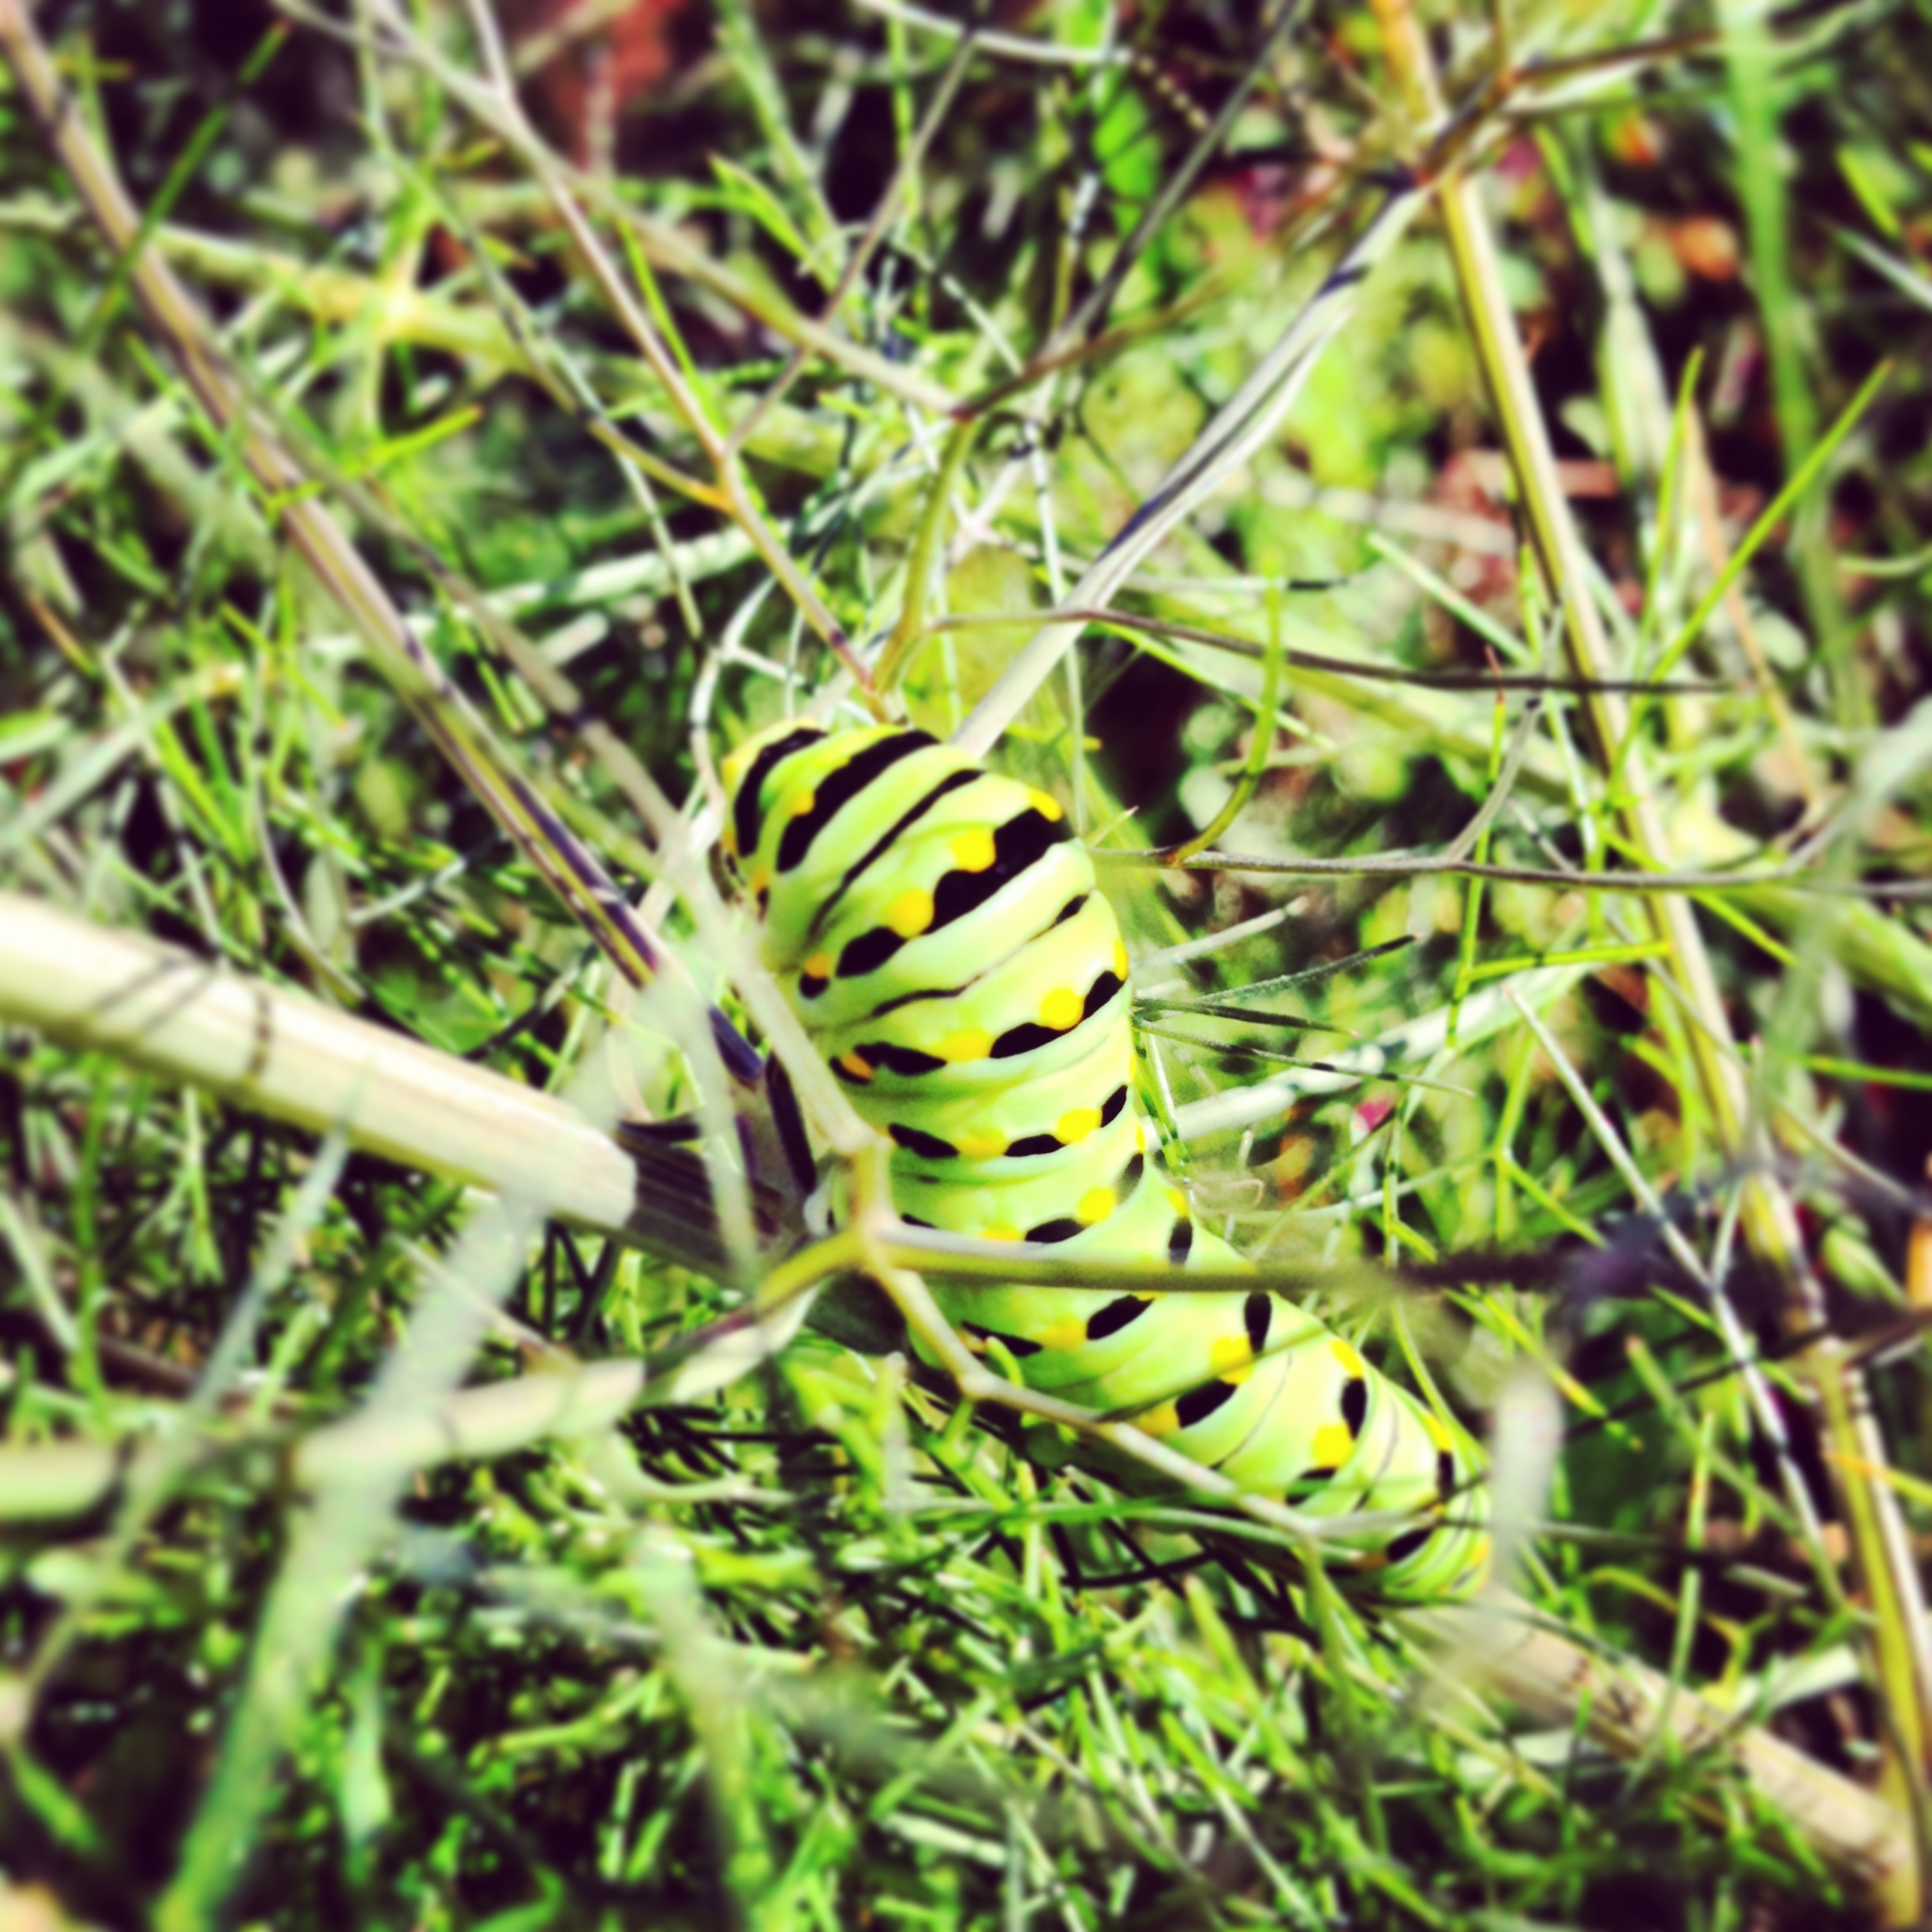 Black swallowtail butterfly catepillar feeding on fennel foliage.